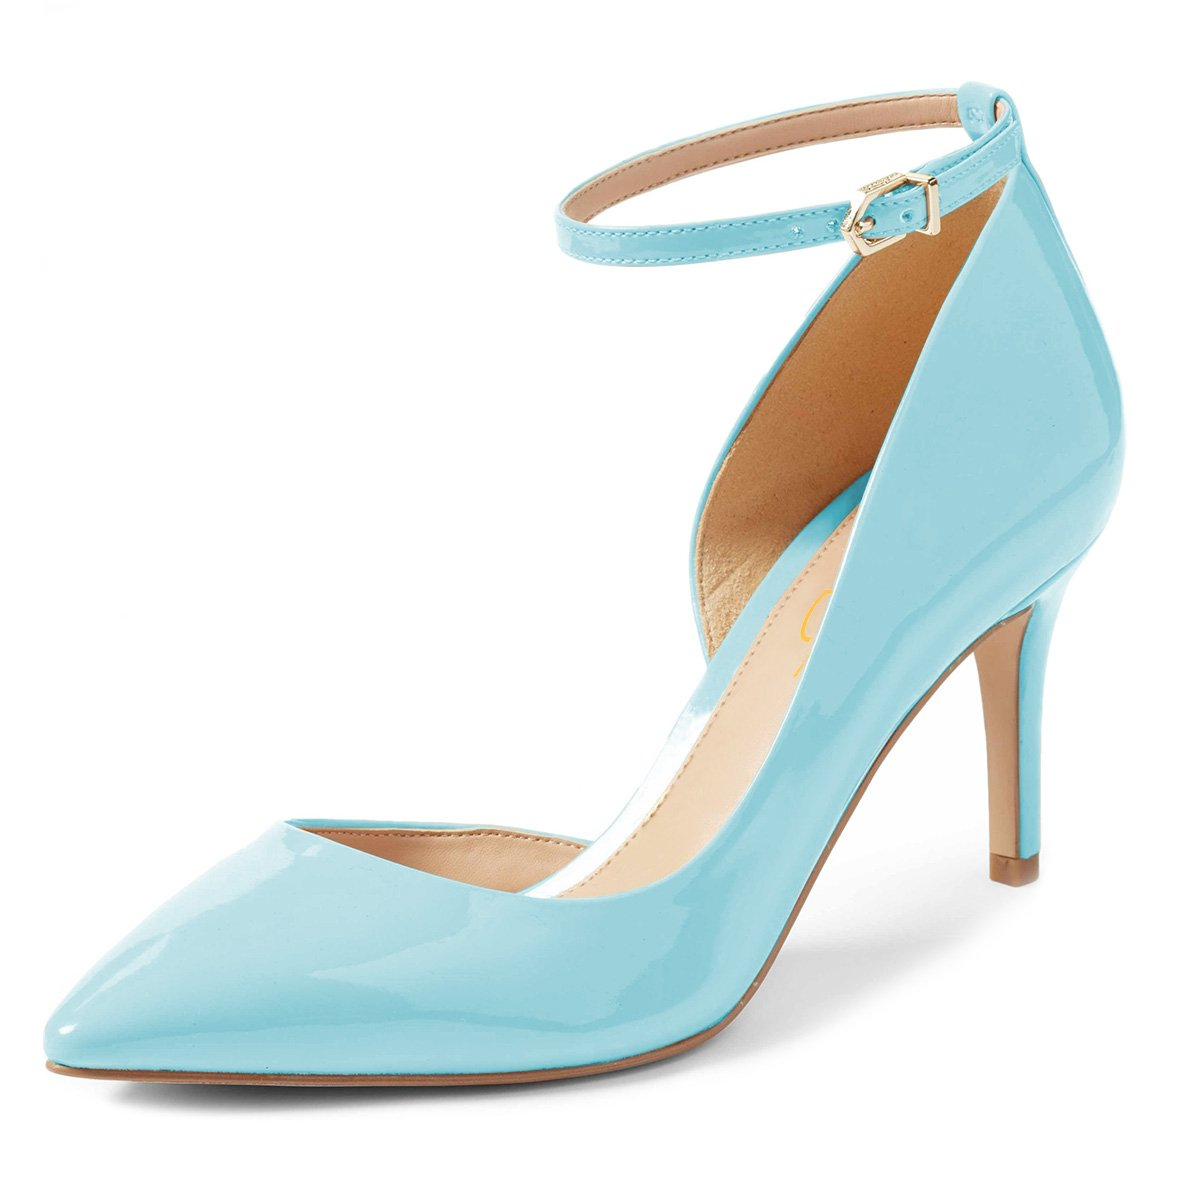 XYD Women Pointed Toe D'Orsay Mid Heel Pumps Ankle Strap Buckled Wedding Party Dress Shoes B078XPPQQP 8 B(M) US|Light Blue